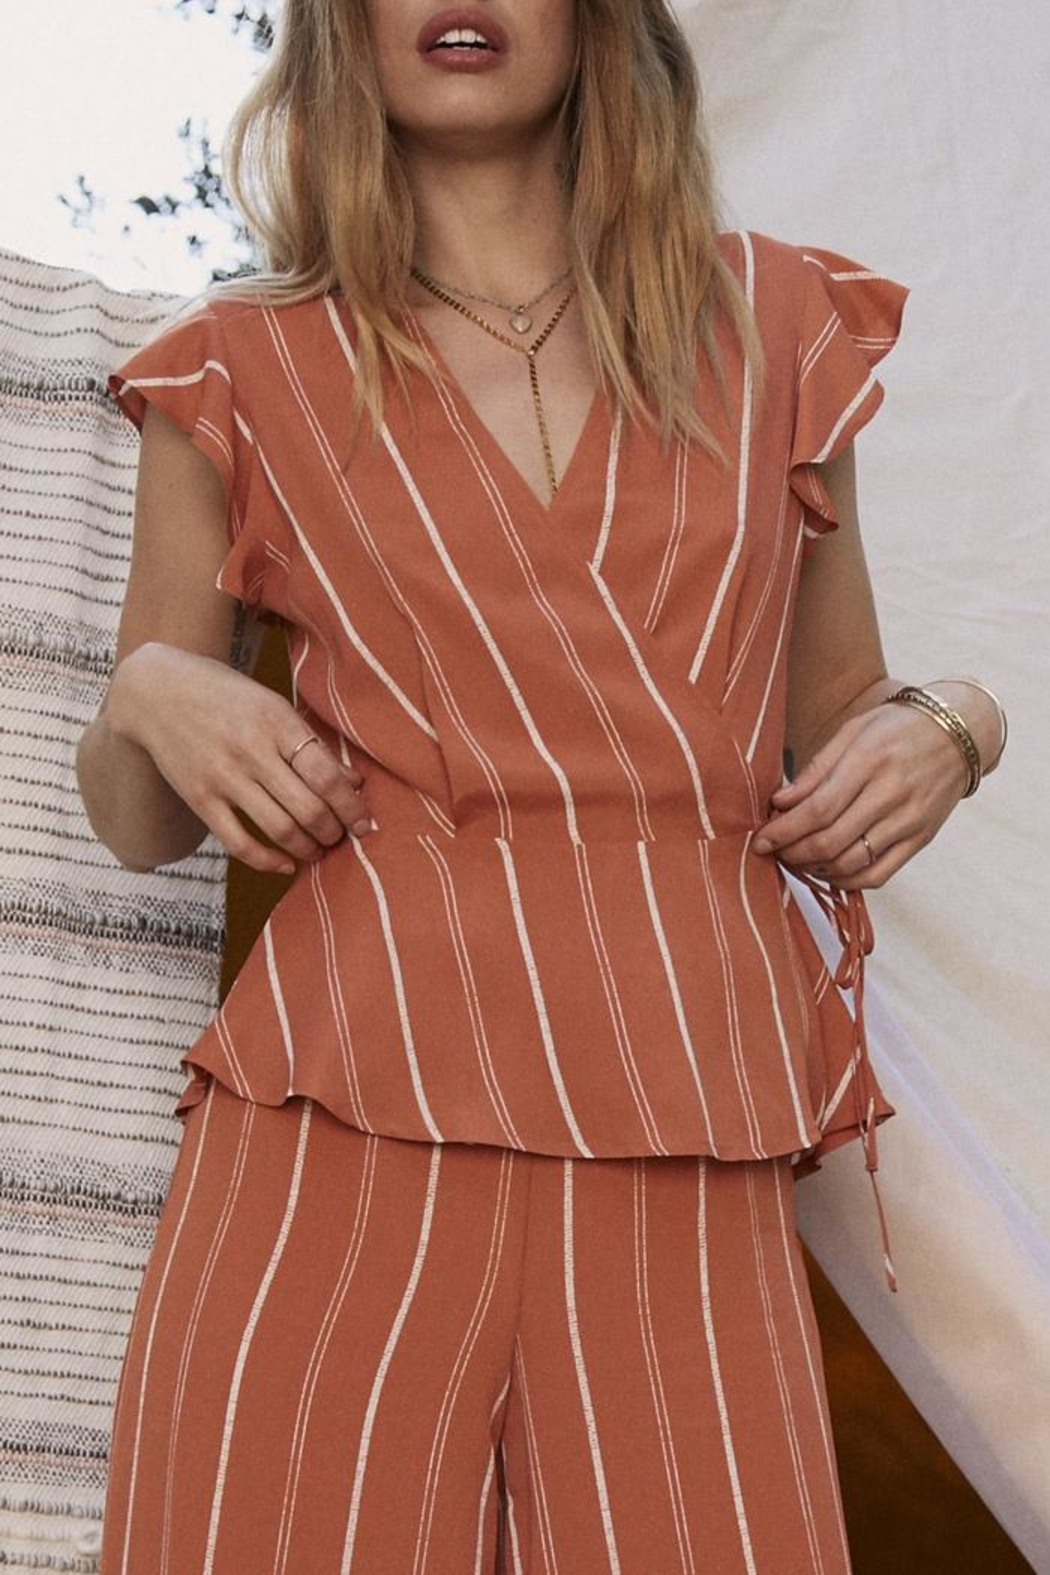 SAGE THE LABEL Striped Tie Top - Main Image